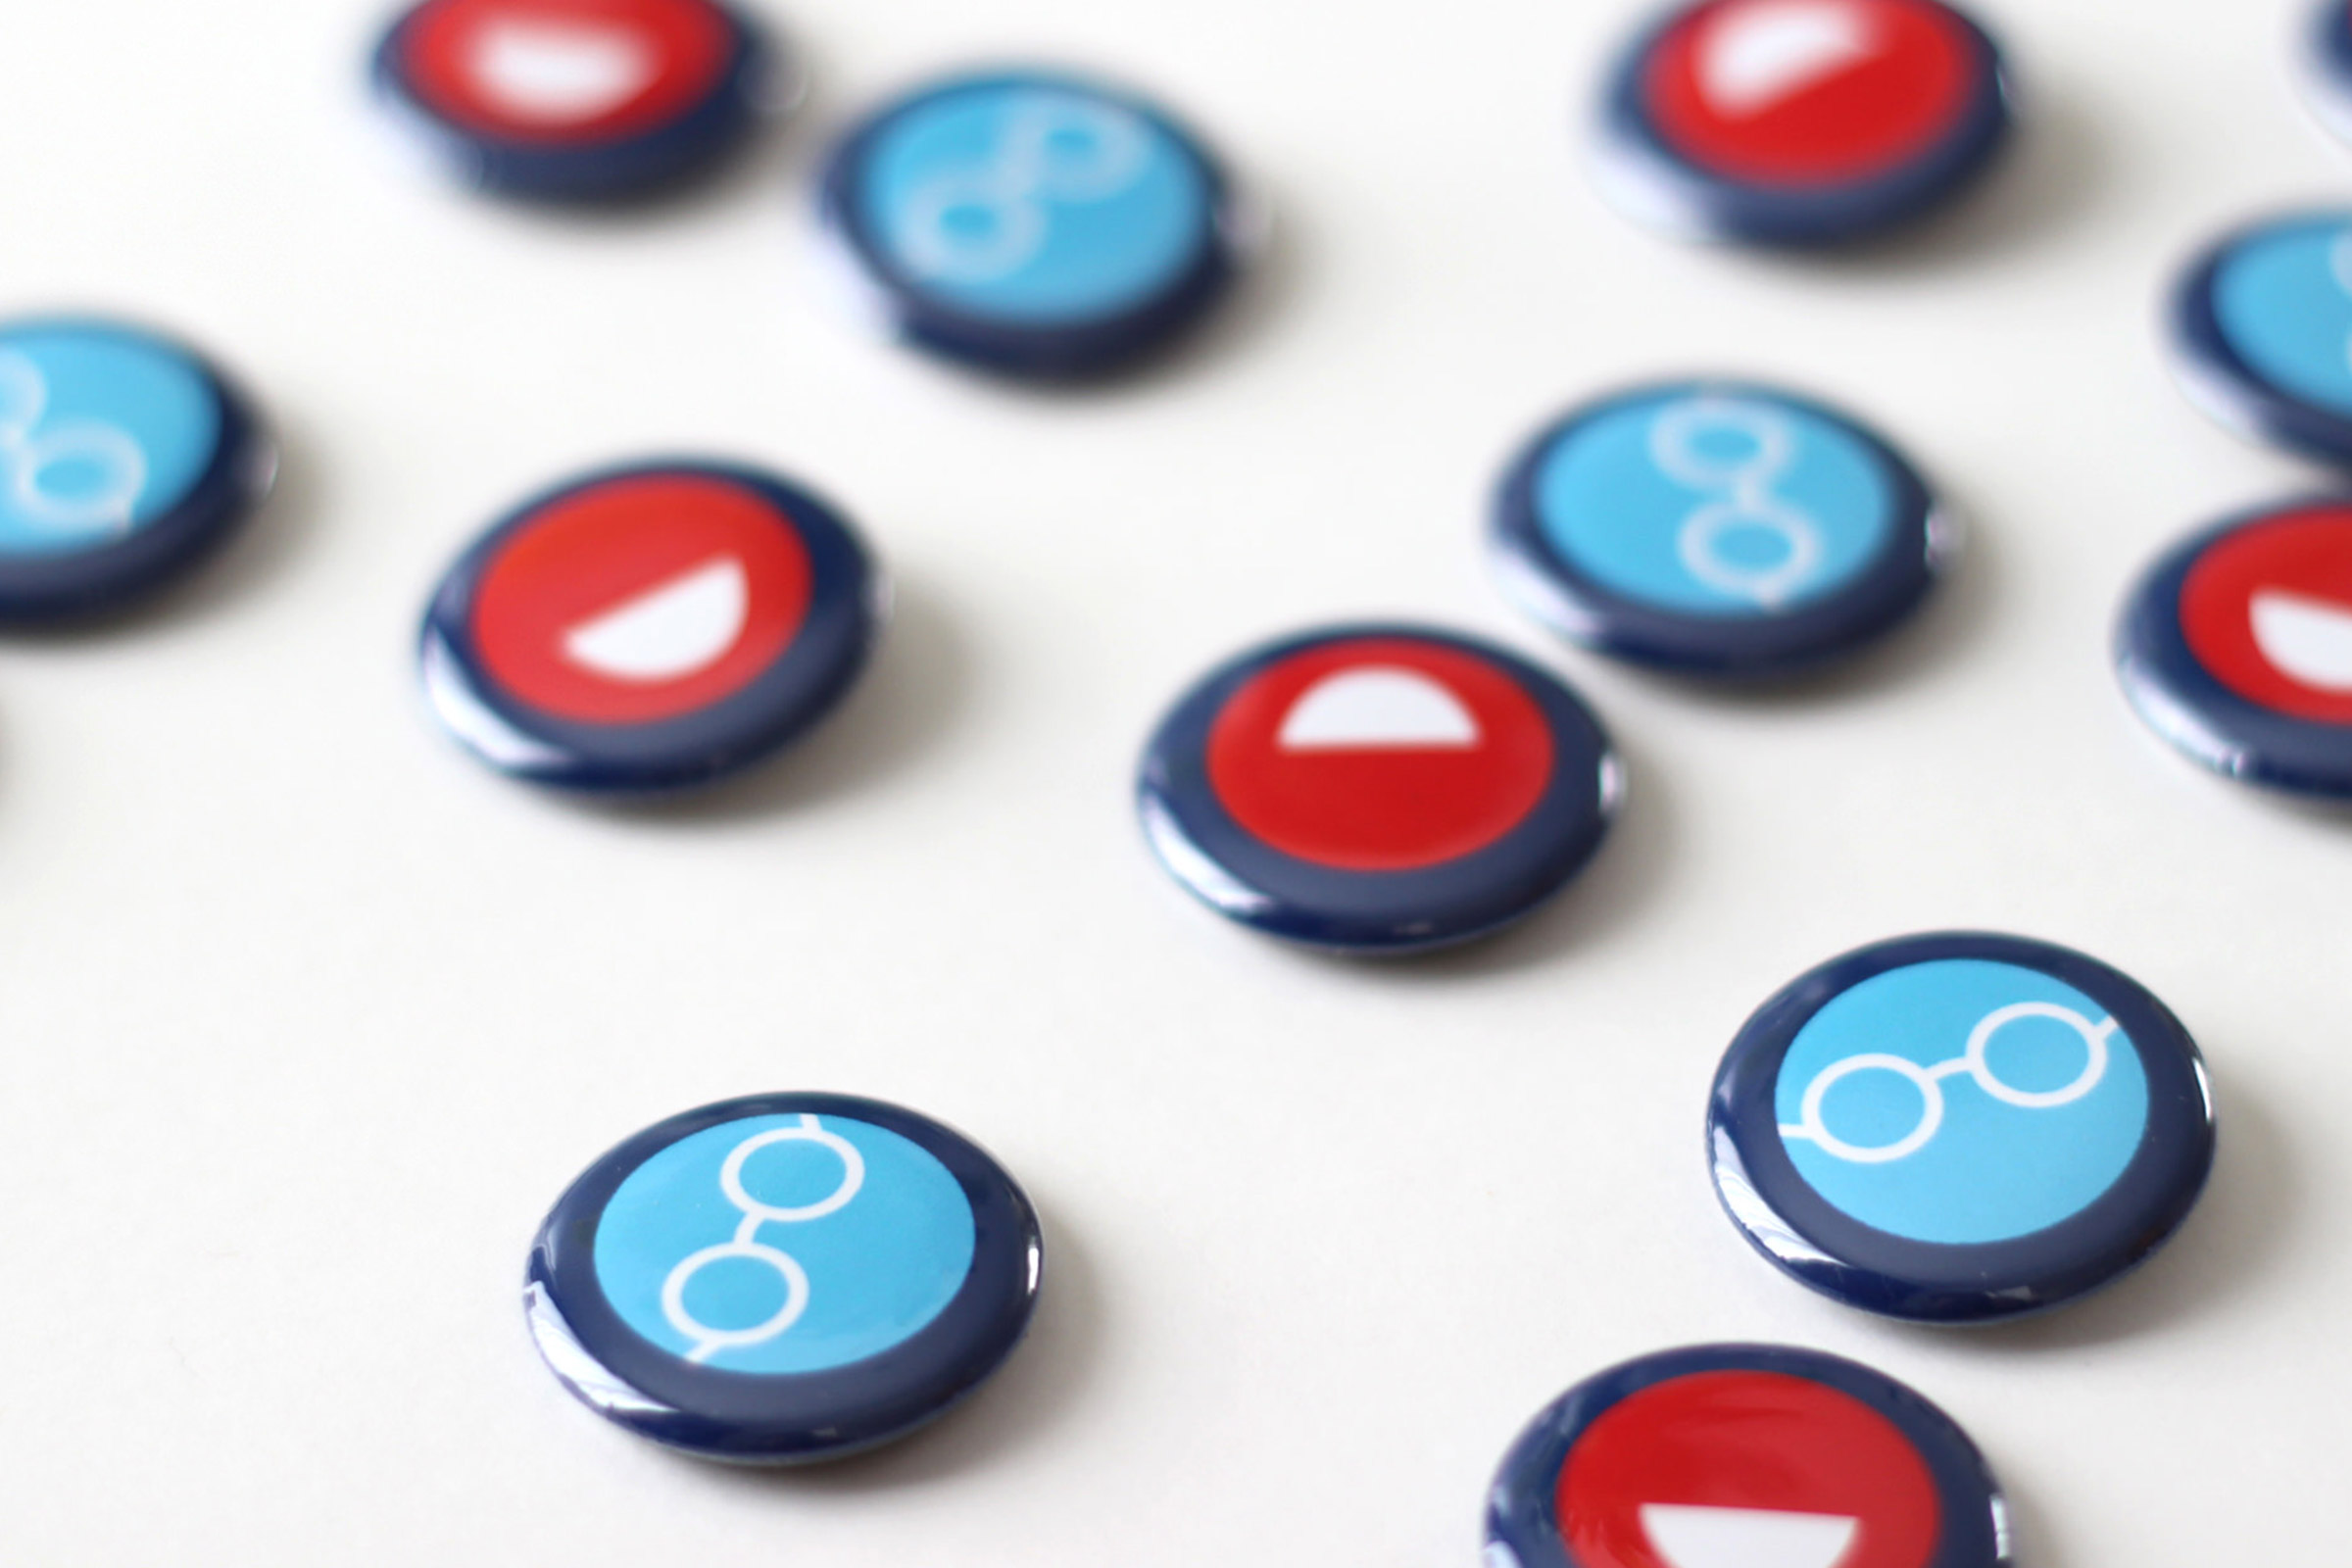 comedy, app, pattern, buttons